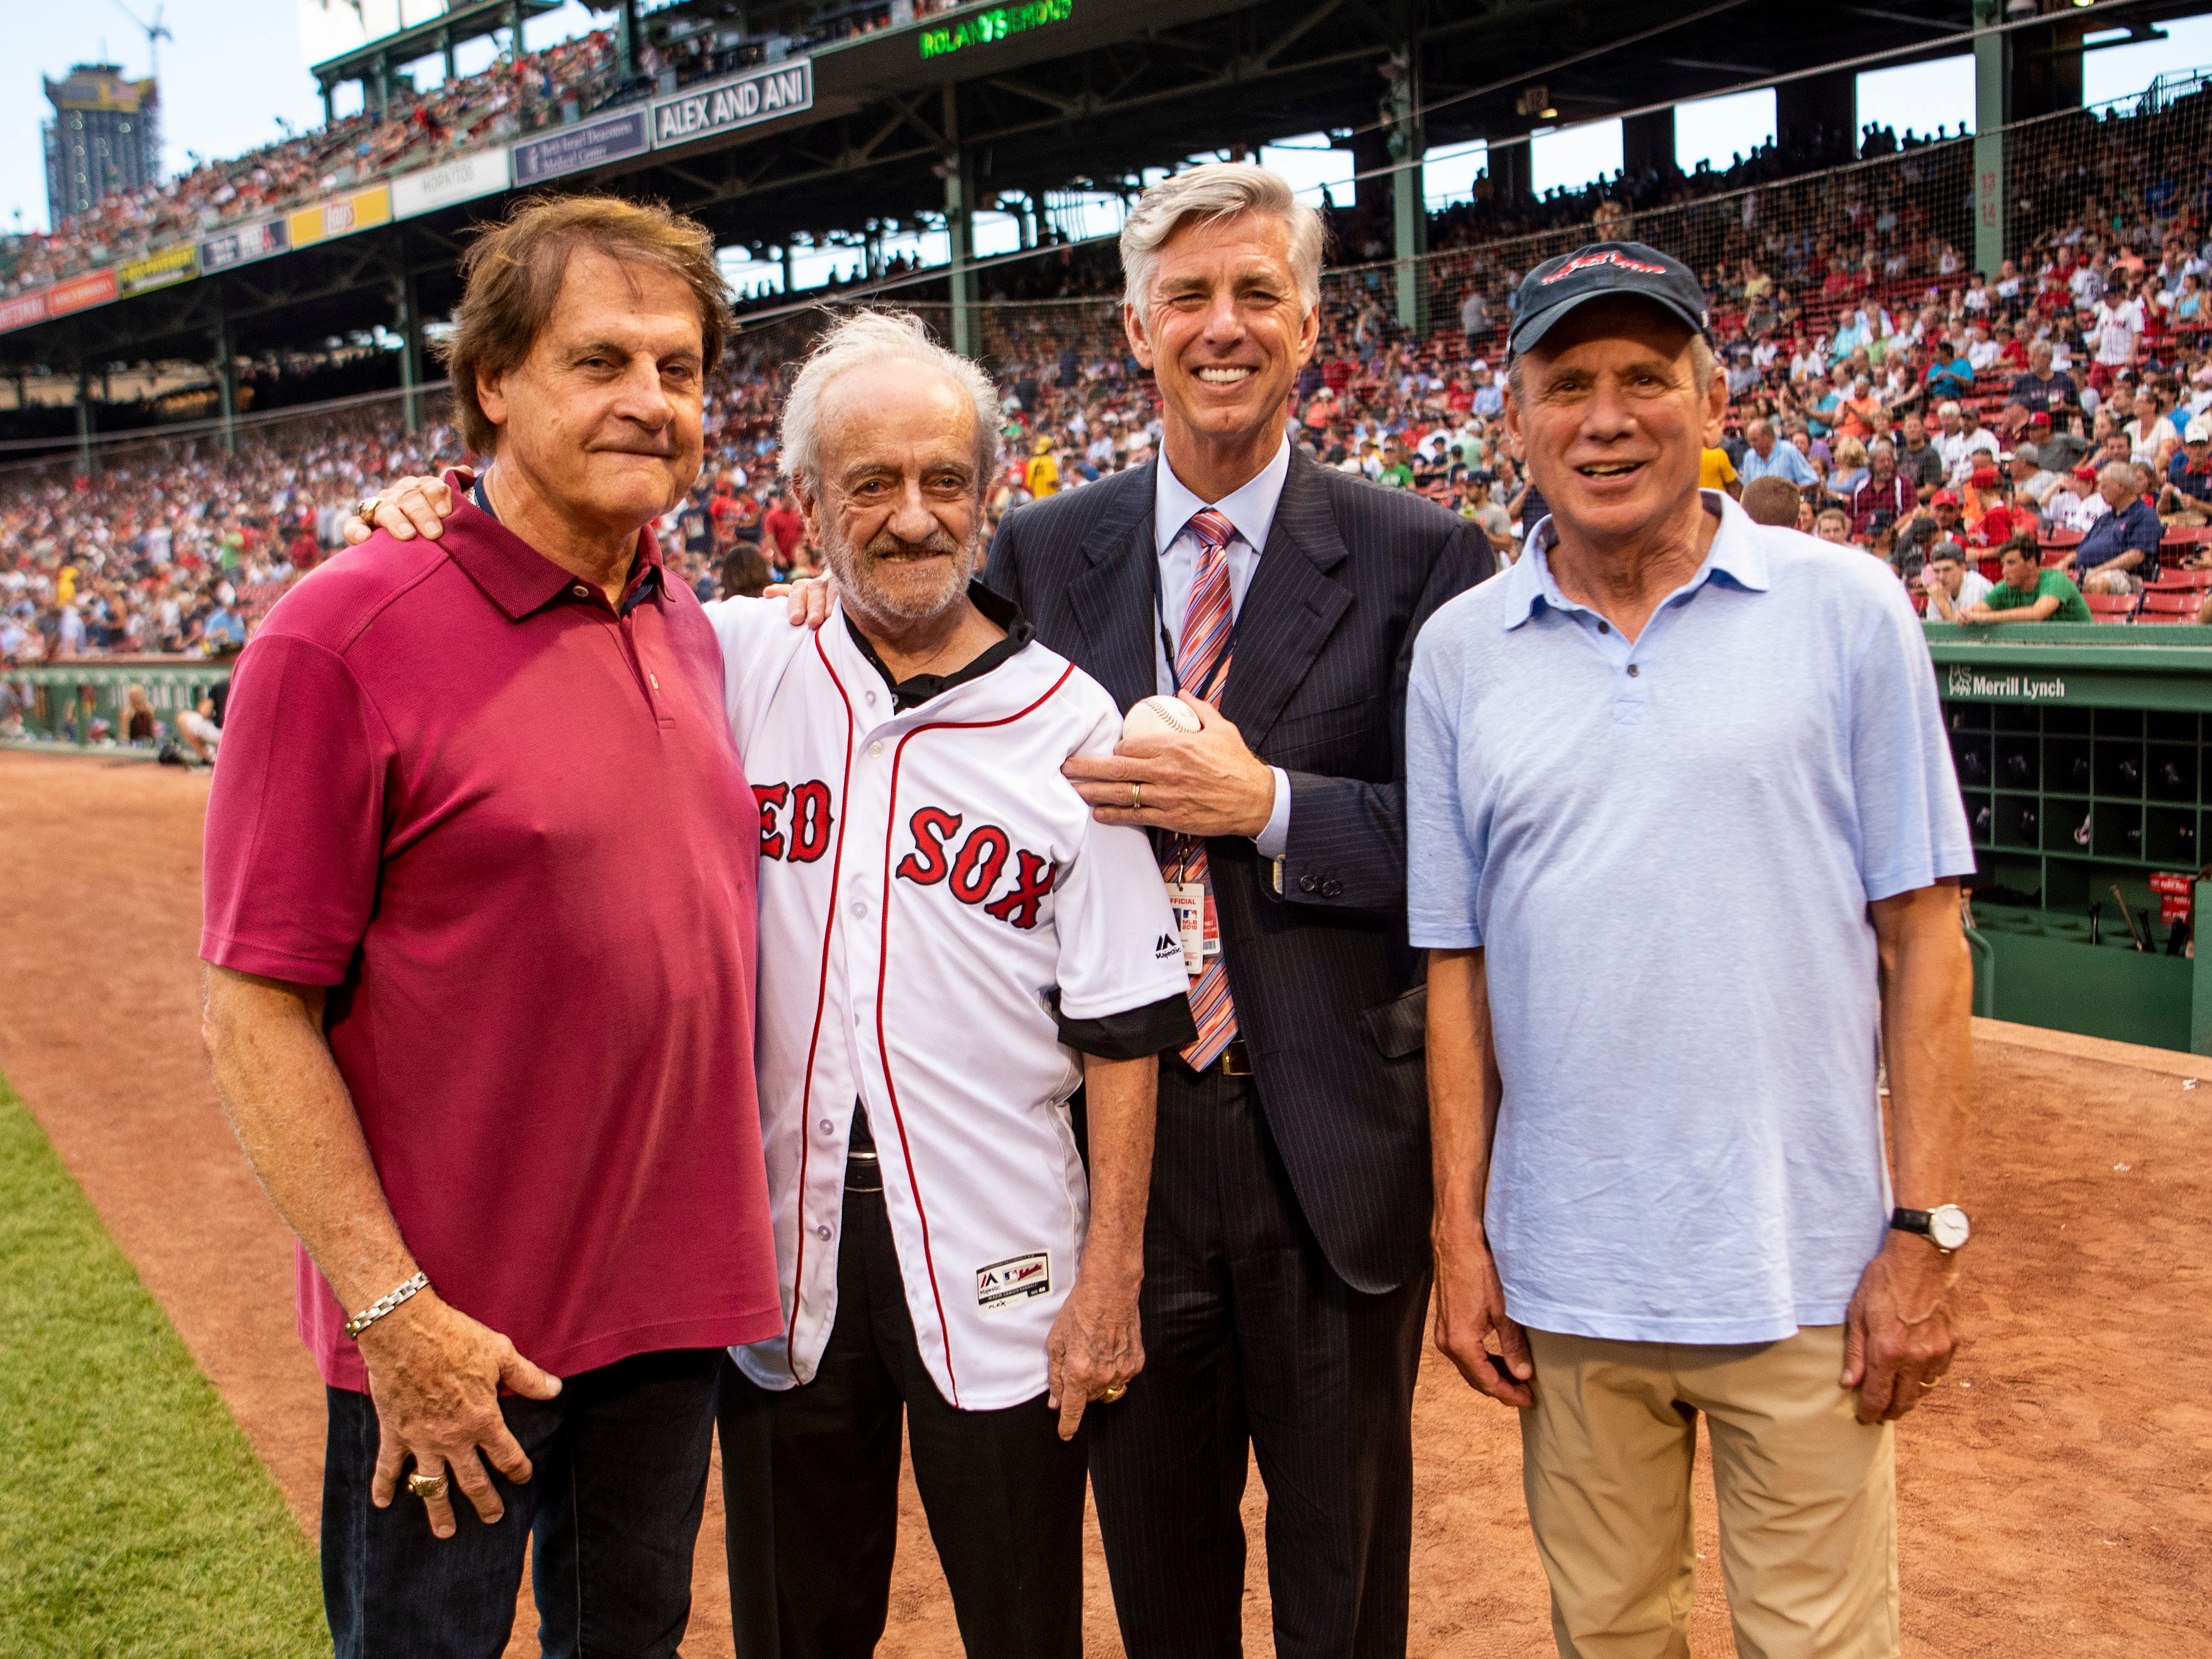 BOSTON, MA - AUGUST 2: Major League Baseball Executive Roland Hemond poses for a photograph with Boston Red Sox Special Assistant Tony La Russa, President of Baseball Operations Dave Dombrowski and President & CEO Emeritus Larry Lucchino before throwing out the ceremonial first pitch before a game between the Boston Red Sox and the New York Yankees on August 2, 2018 at Fenway Park in Boston, Massachusetts. (Photo by Billie Weiss/Boston Red Sox/Getty Images) *** Local Caption *** Roland Hemond; Tony La Russa; Larry Lucchino; Dave Dombrowski